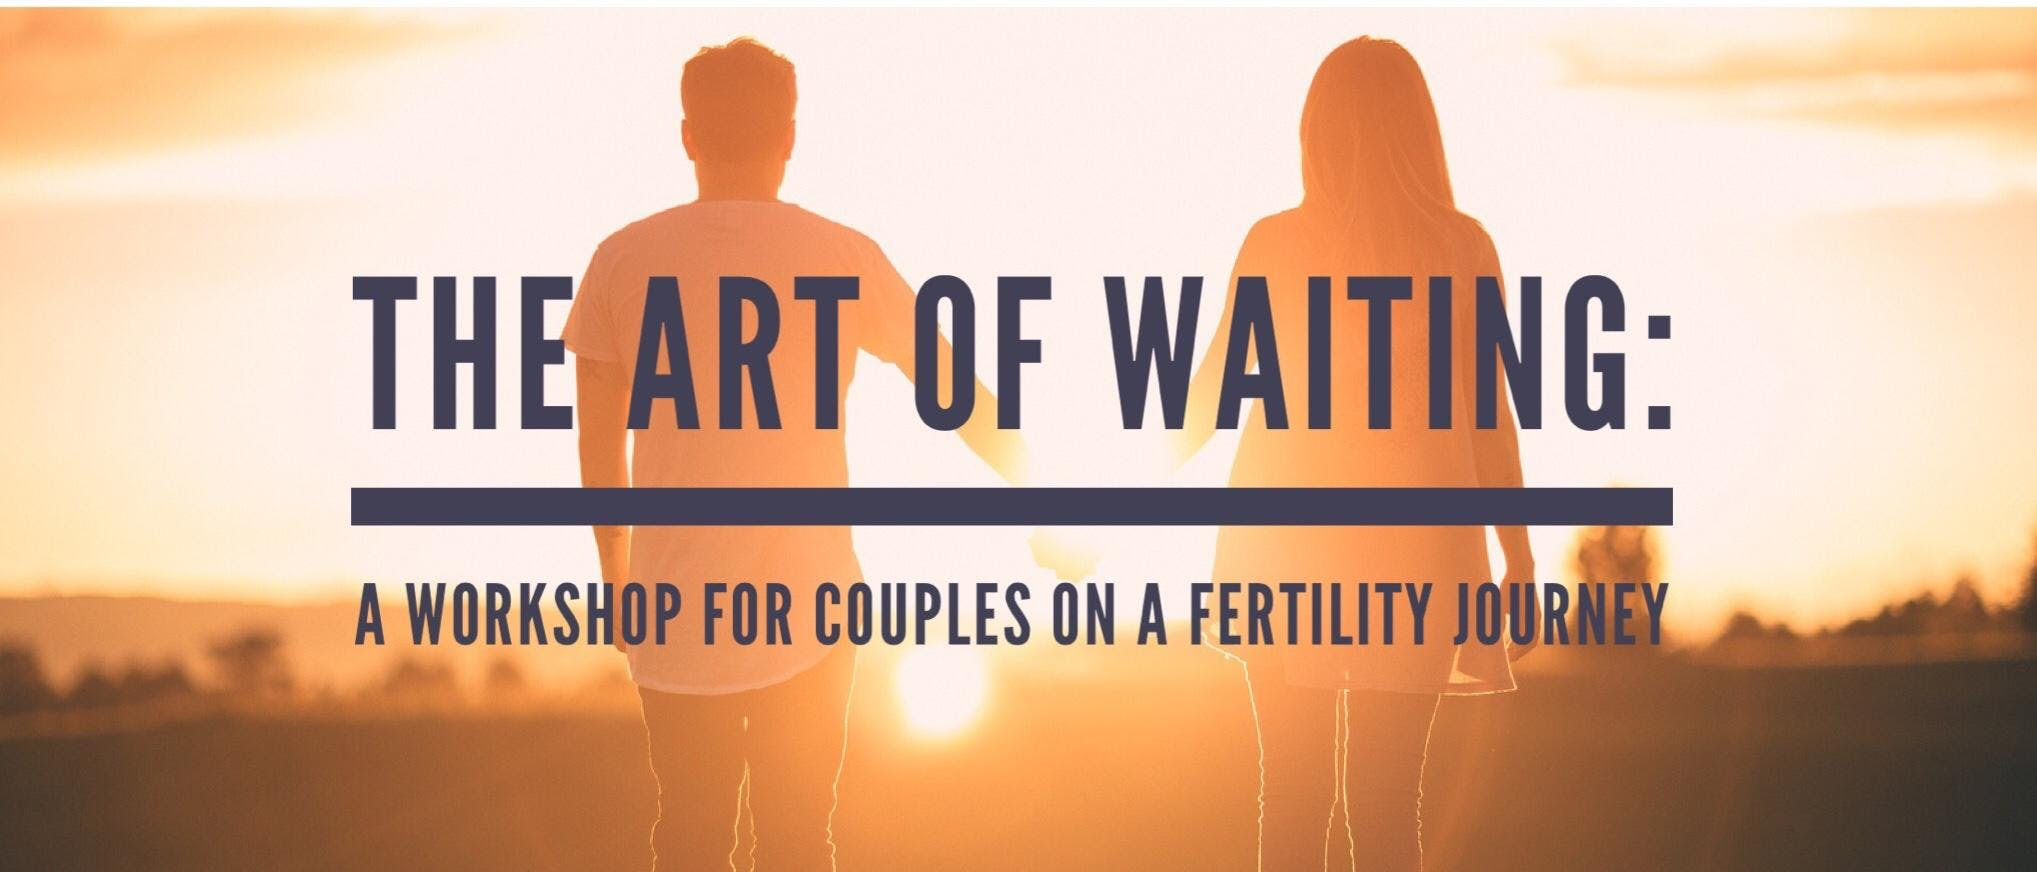 The Art of Waiting A Workshop for Couples on a Fertility Journey